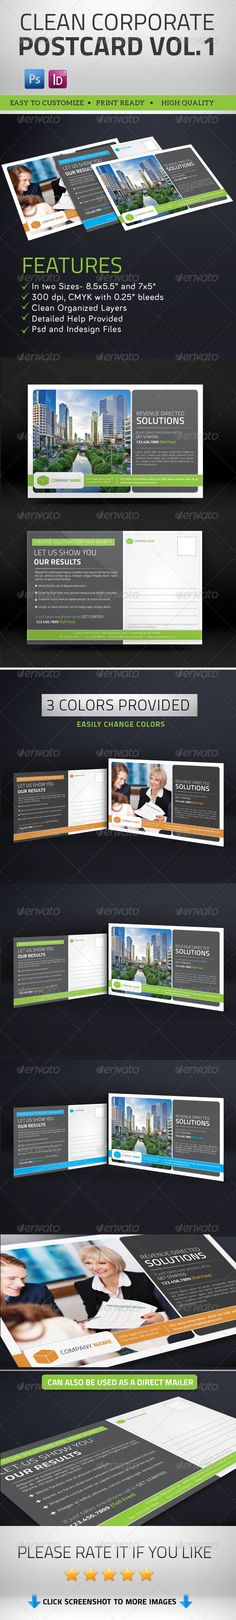 Multipurpose Clean Corporate Postcard Vol1 — Photoshop PSD #orange #photoshop • Available here → https://graphicriver.net/item/multipurpose-clean-corporate-postcard-vol1/7975639?ref=pxcr